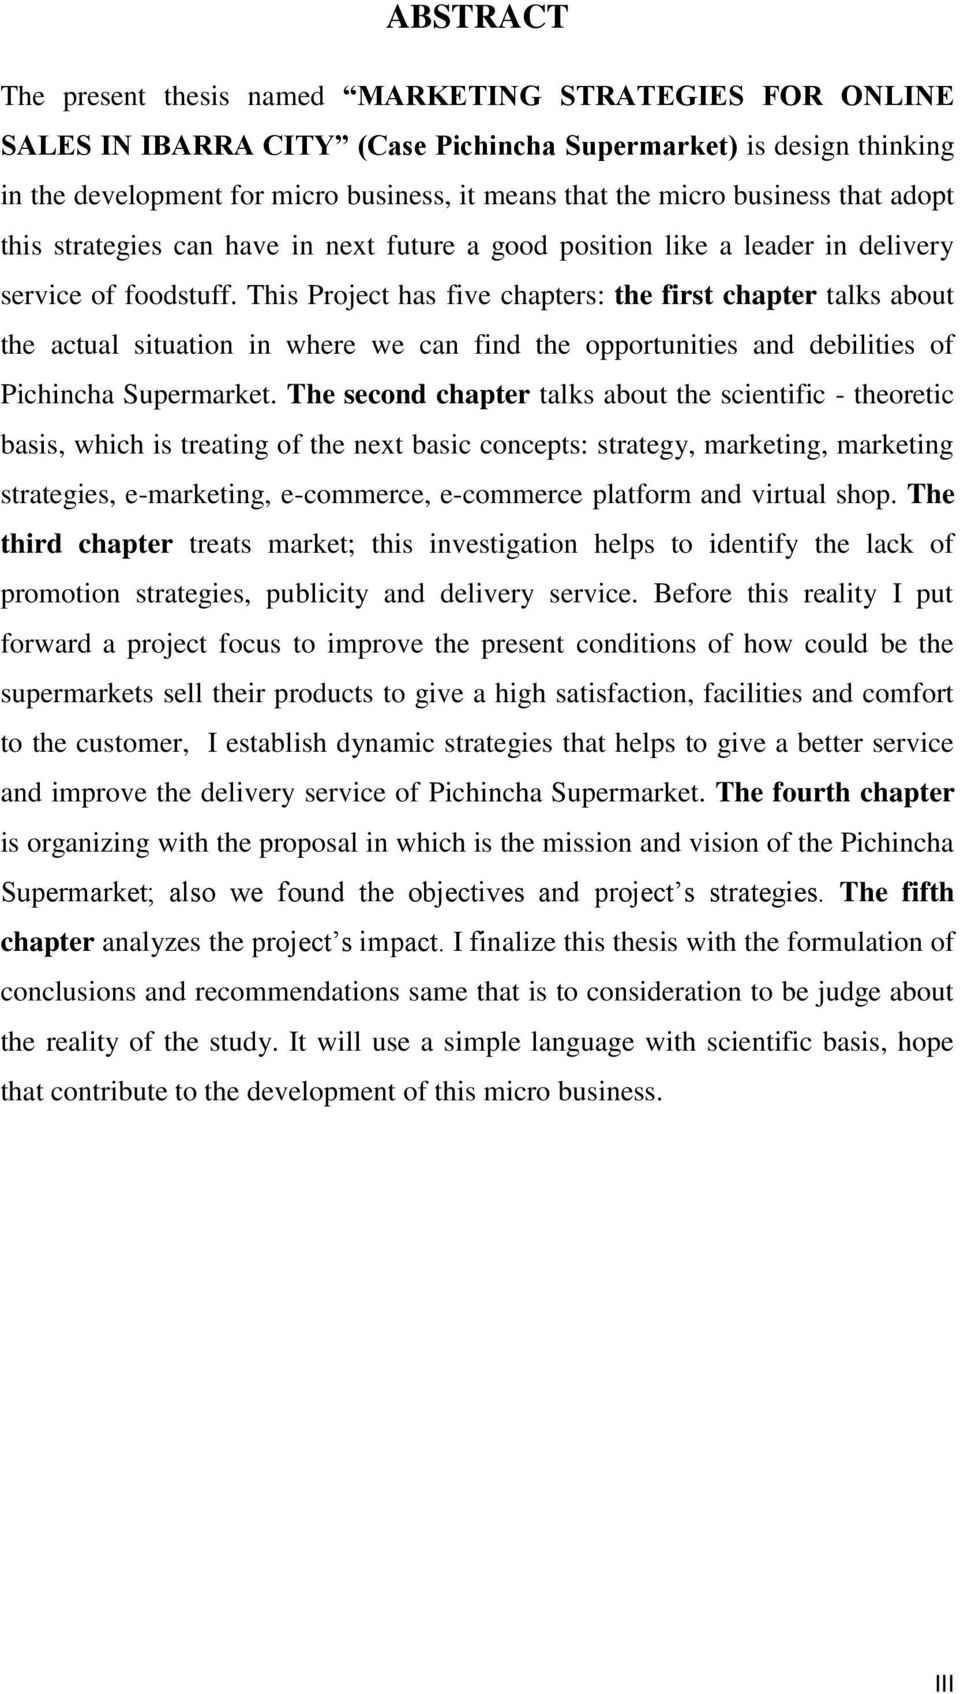 This Project has five chapters: the first chapter talks about the actual situation in where we can find the opportunities and debilities of Pichincha Supermarket.